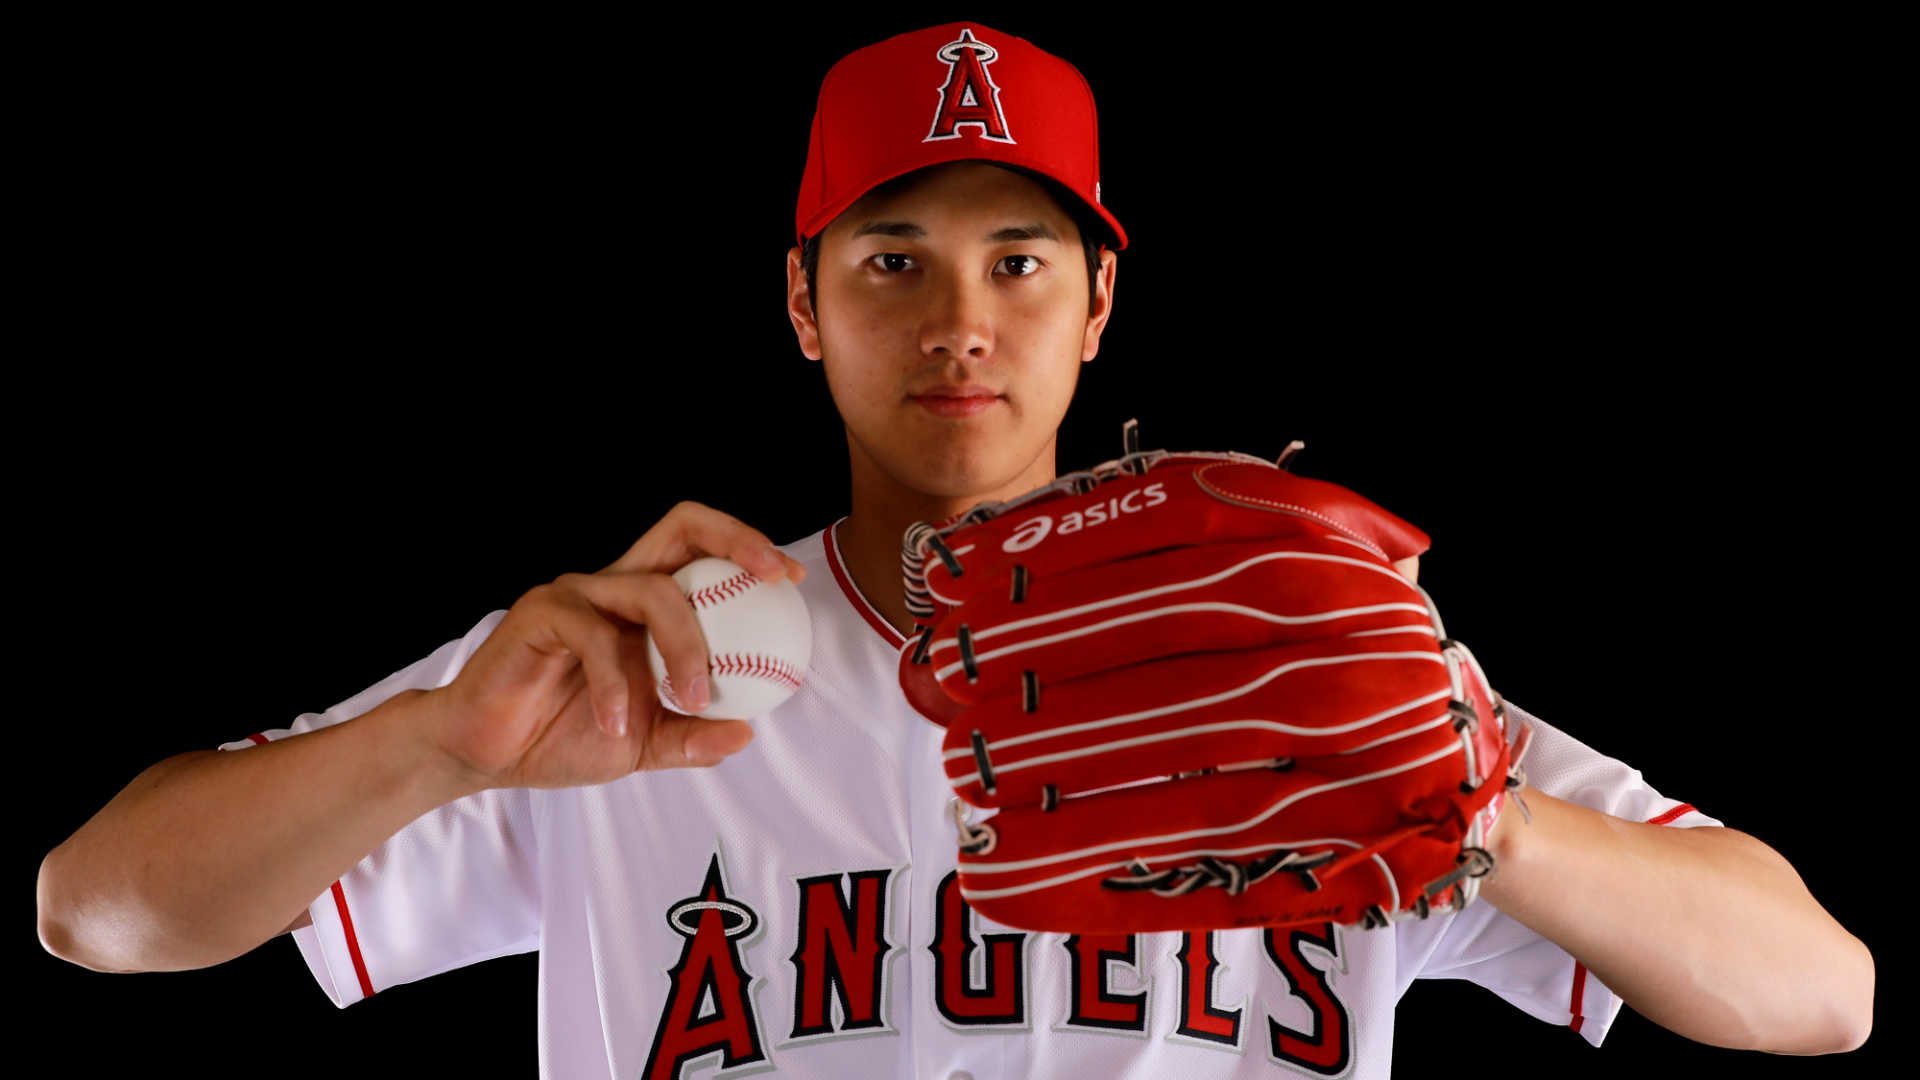 Shohei Ohtani Has Mixed Results In Mlb Debut Mlb Sporting News